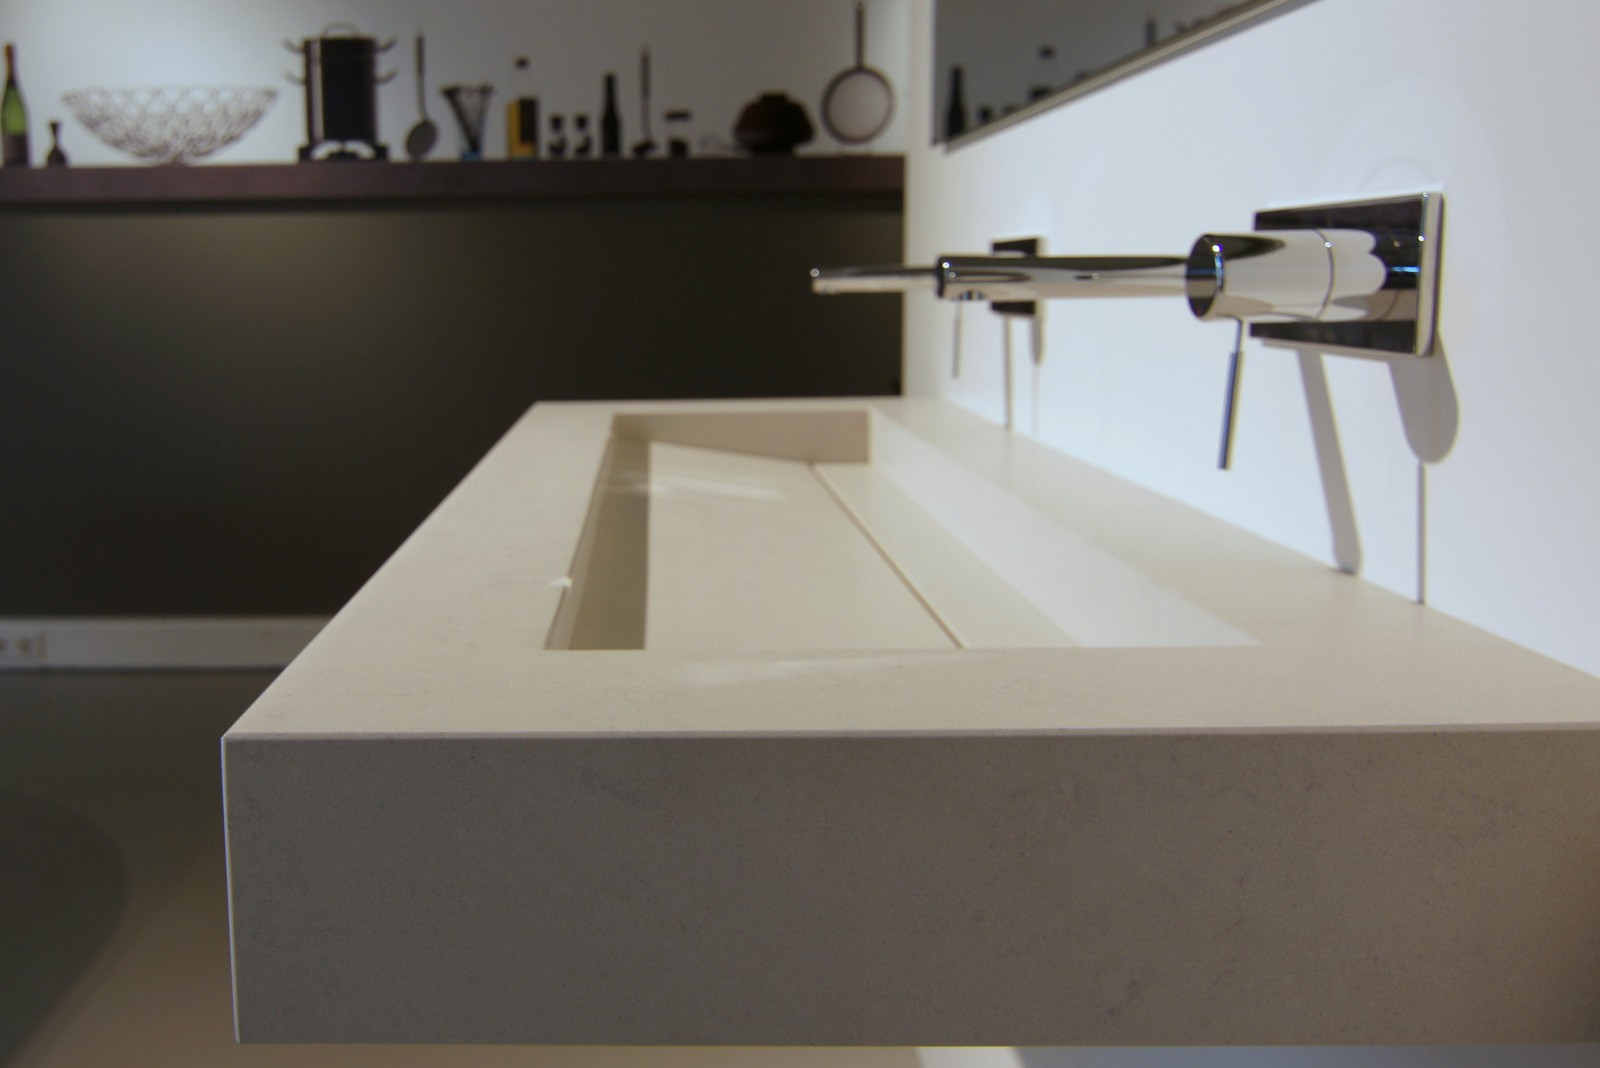 Quartz Vanity Tops : 13 mm Quartz vanity top: Topworktop: Galleries: Digital Photography ...